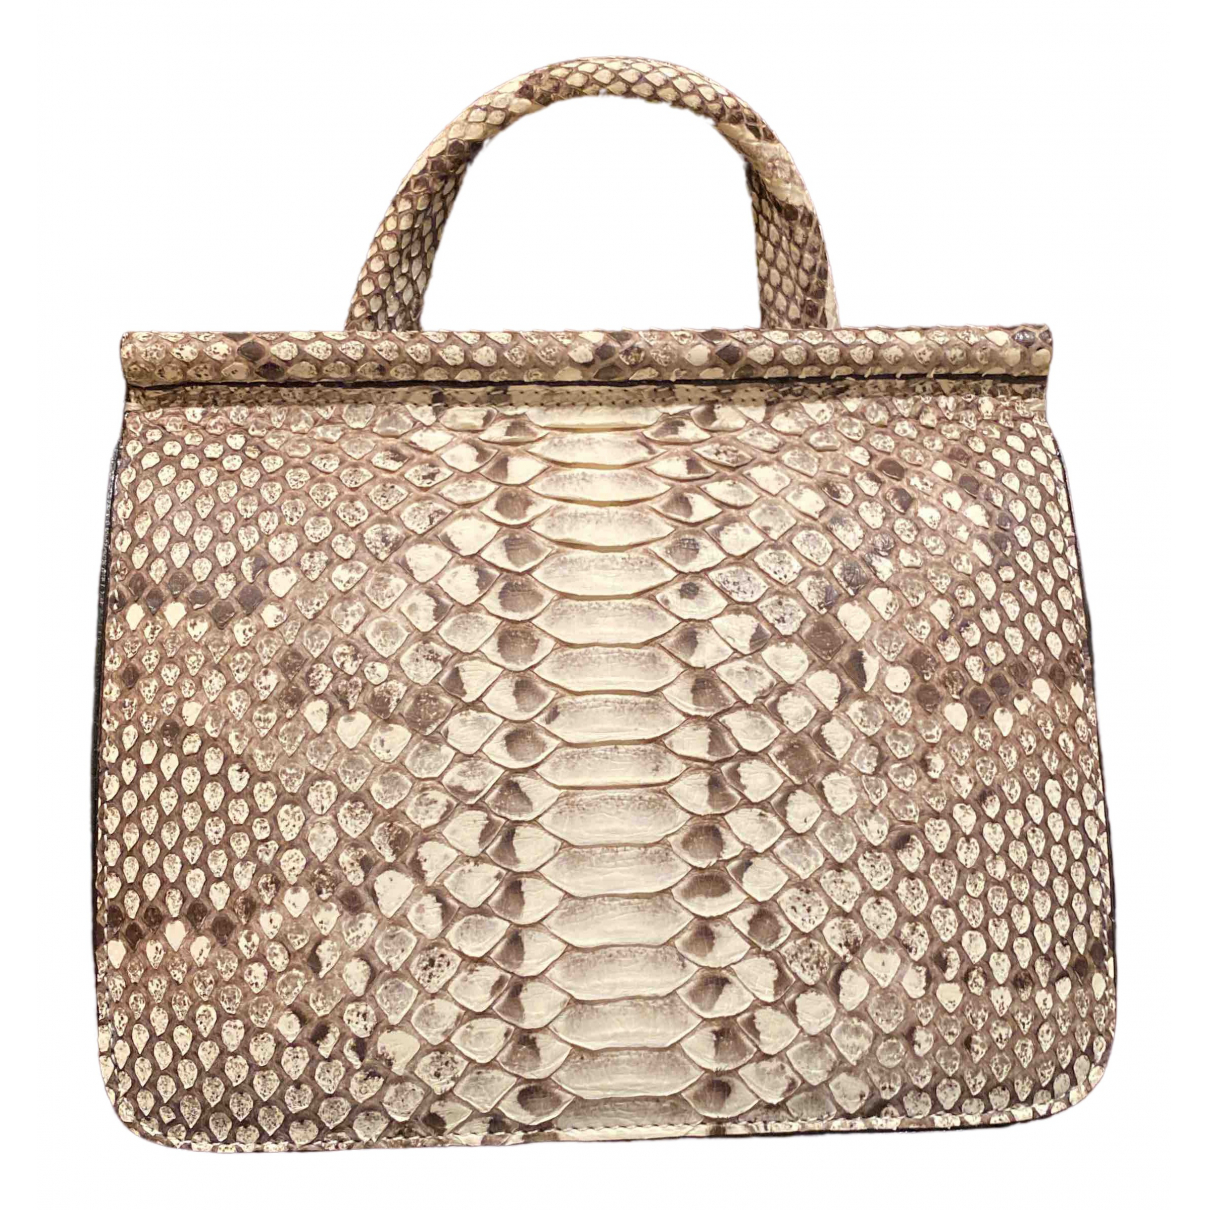 S'uvimol \N Multicolour Python handbag for Women \N